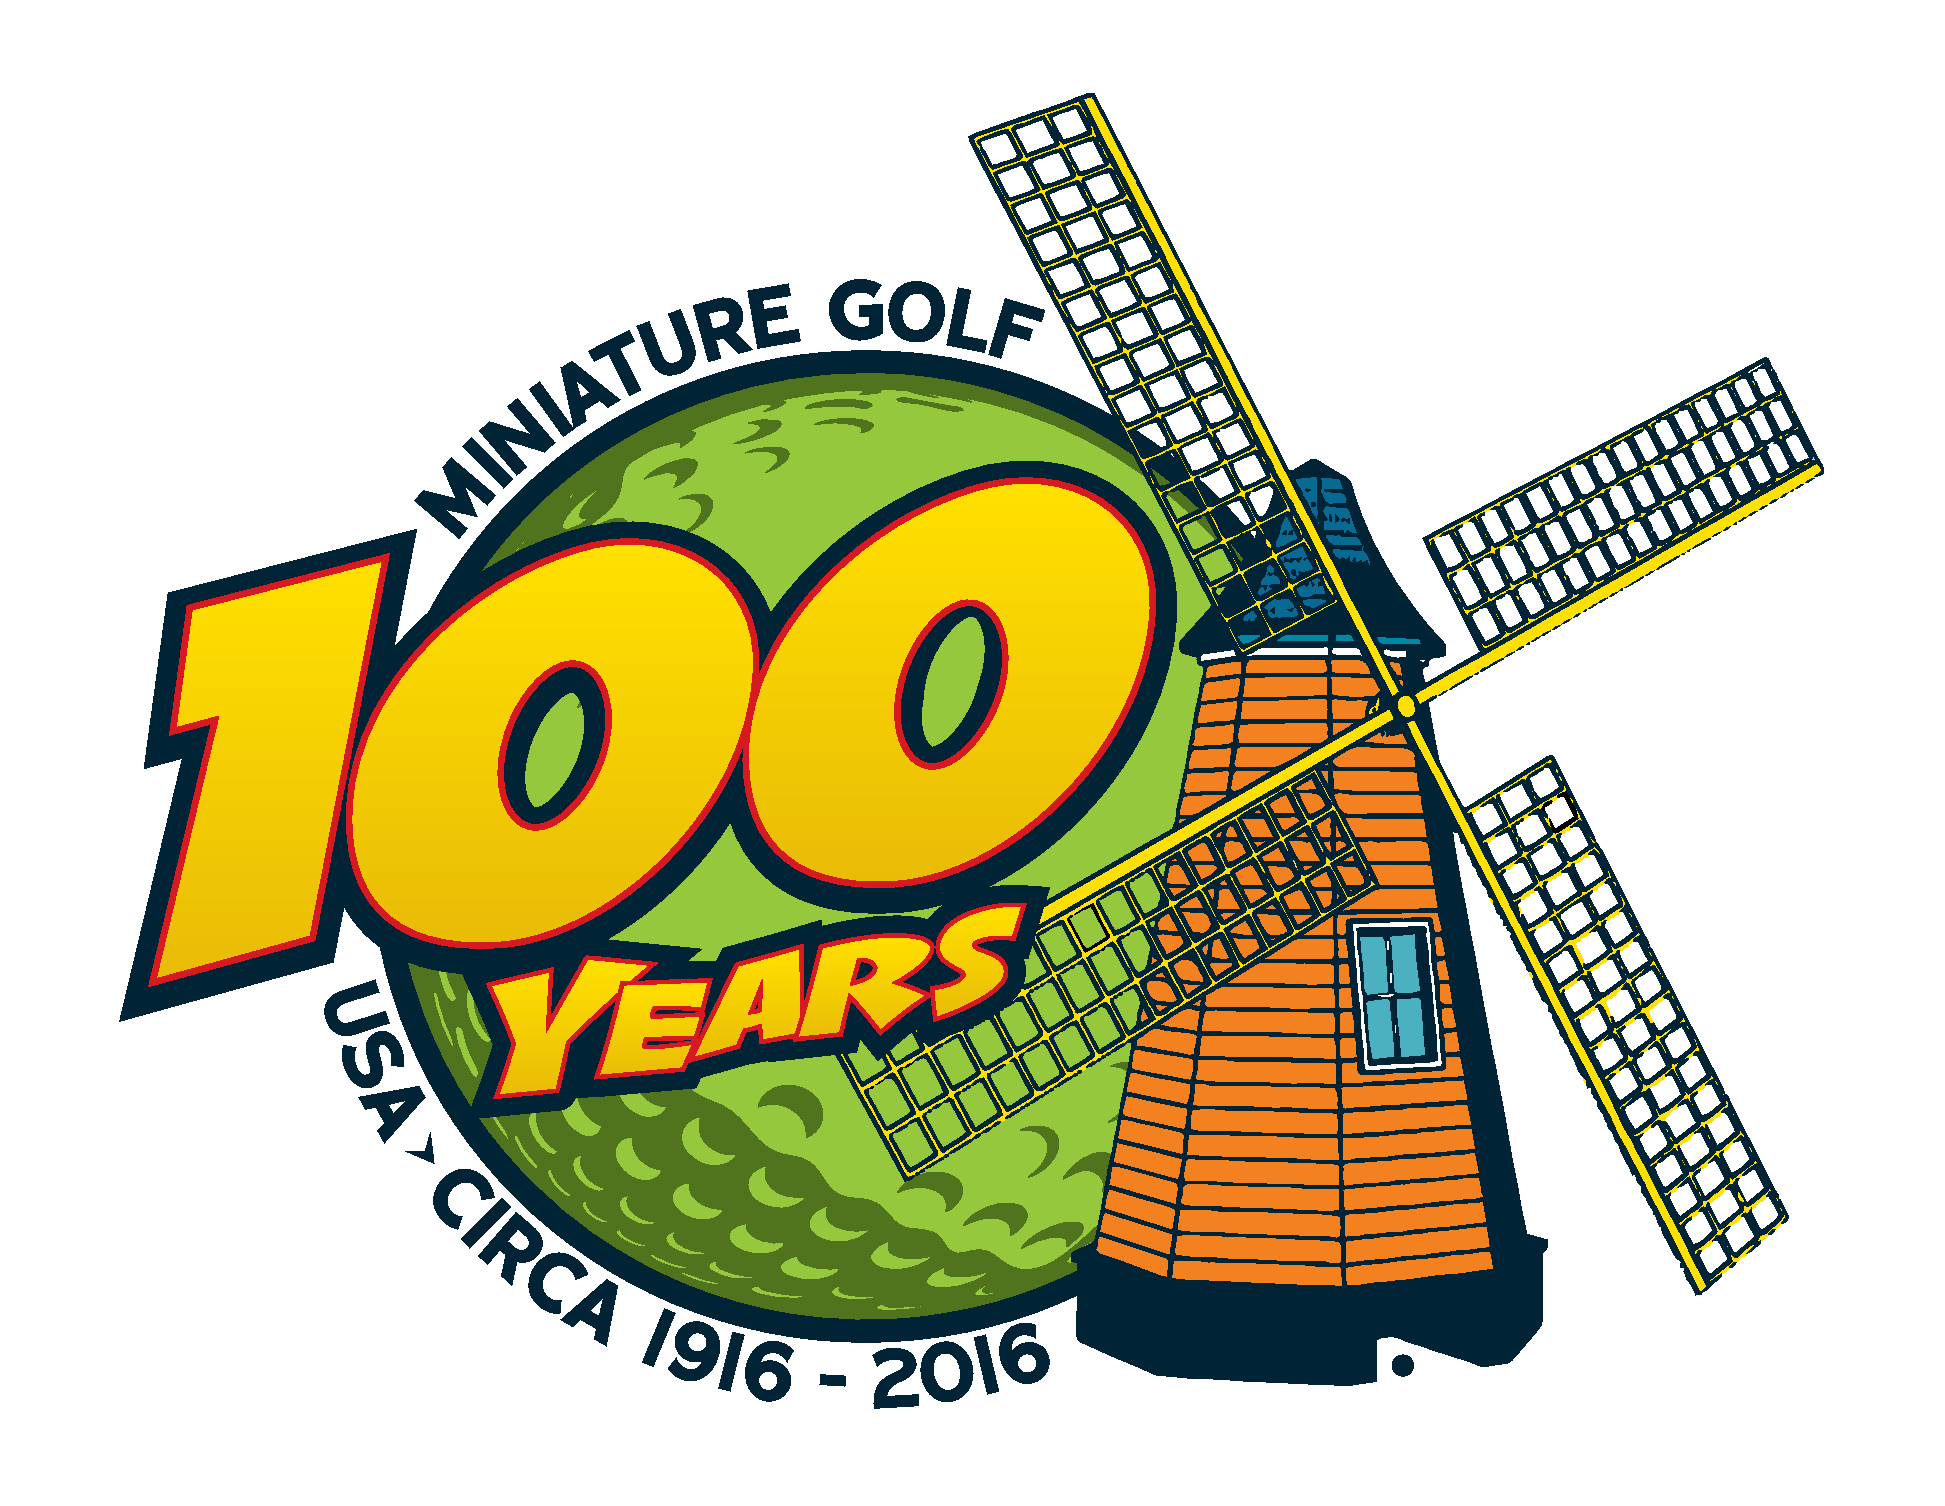 100 Years of Mini golf celebration and fundraiser